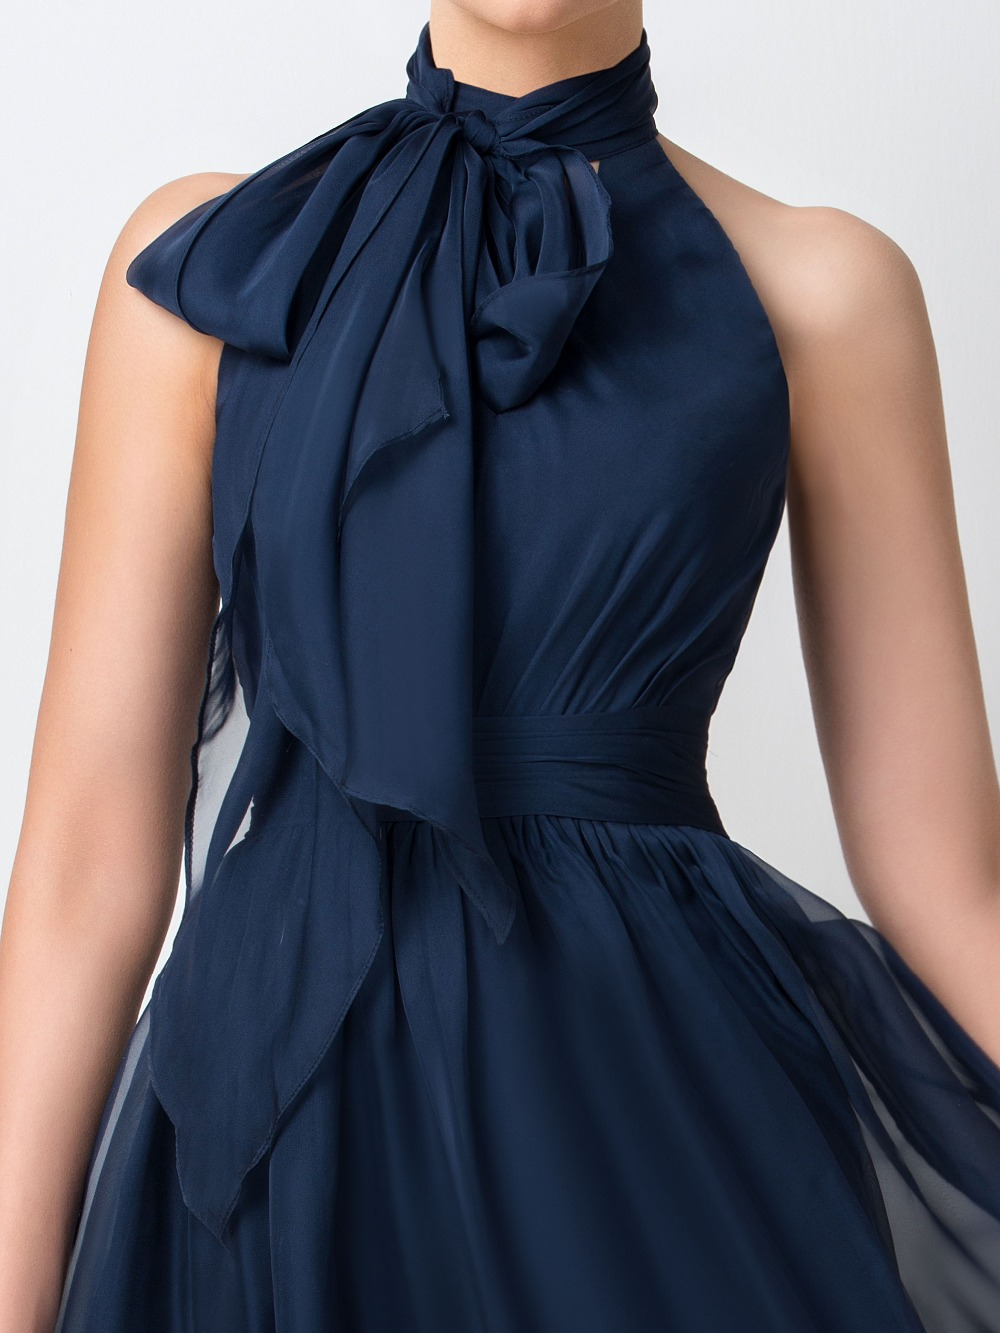 Dressv navy blue chiffon short bridesmaid dress 2017 simple knee dressv navy blue chiffon short bridesmaid dress 2017 simple knee length a line high neck ruffles maid of honor dress party gowns in bridesmaid dresses from ombrellifo Gallery